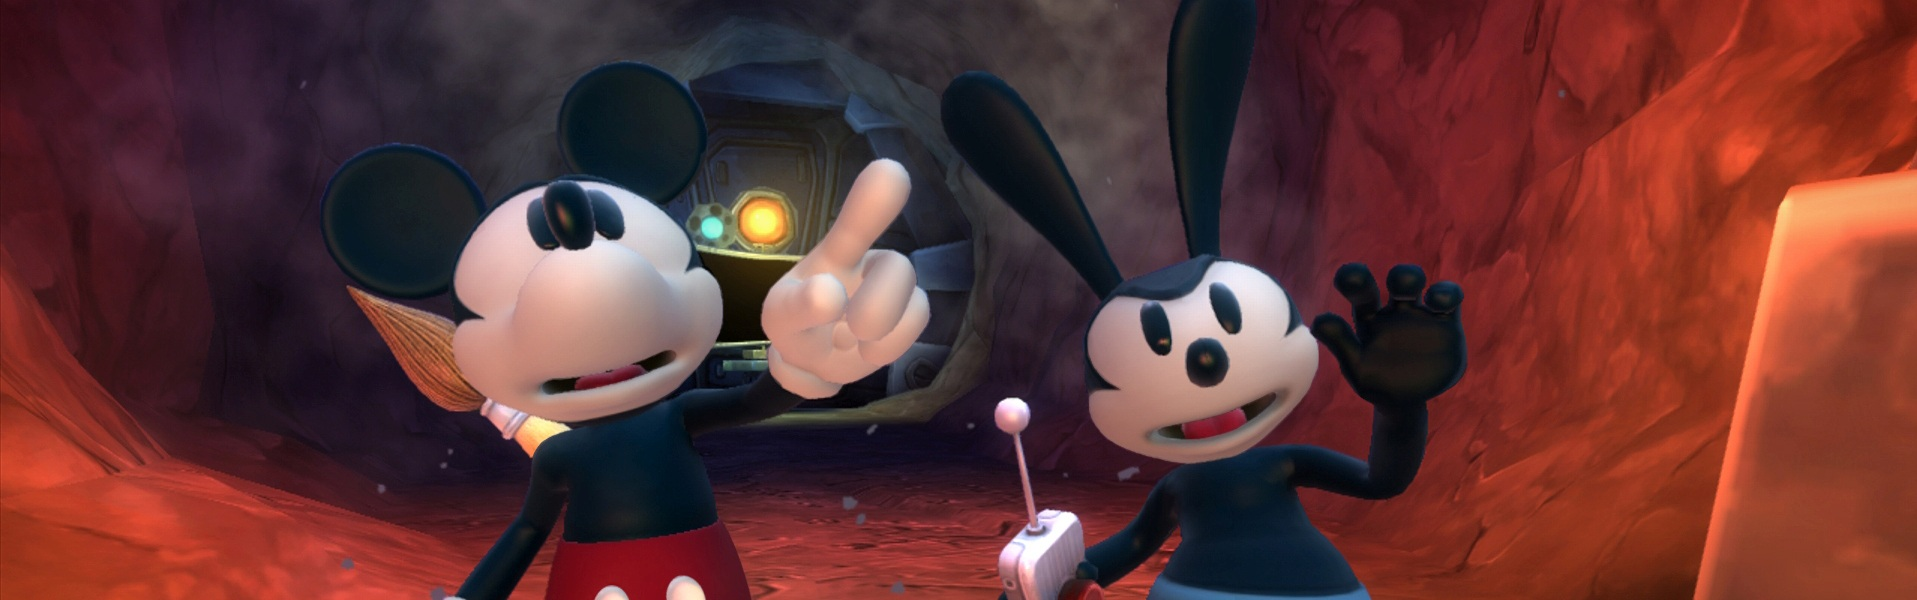 Disney Epic Mickey 2: The Power of Two Steam Key EUROPE